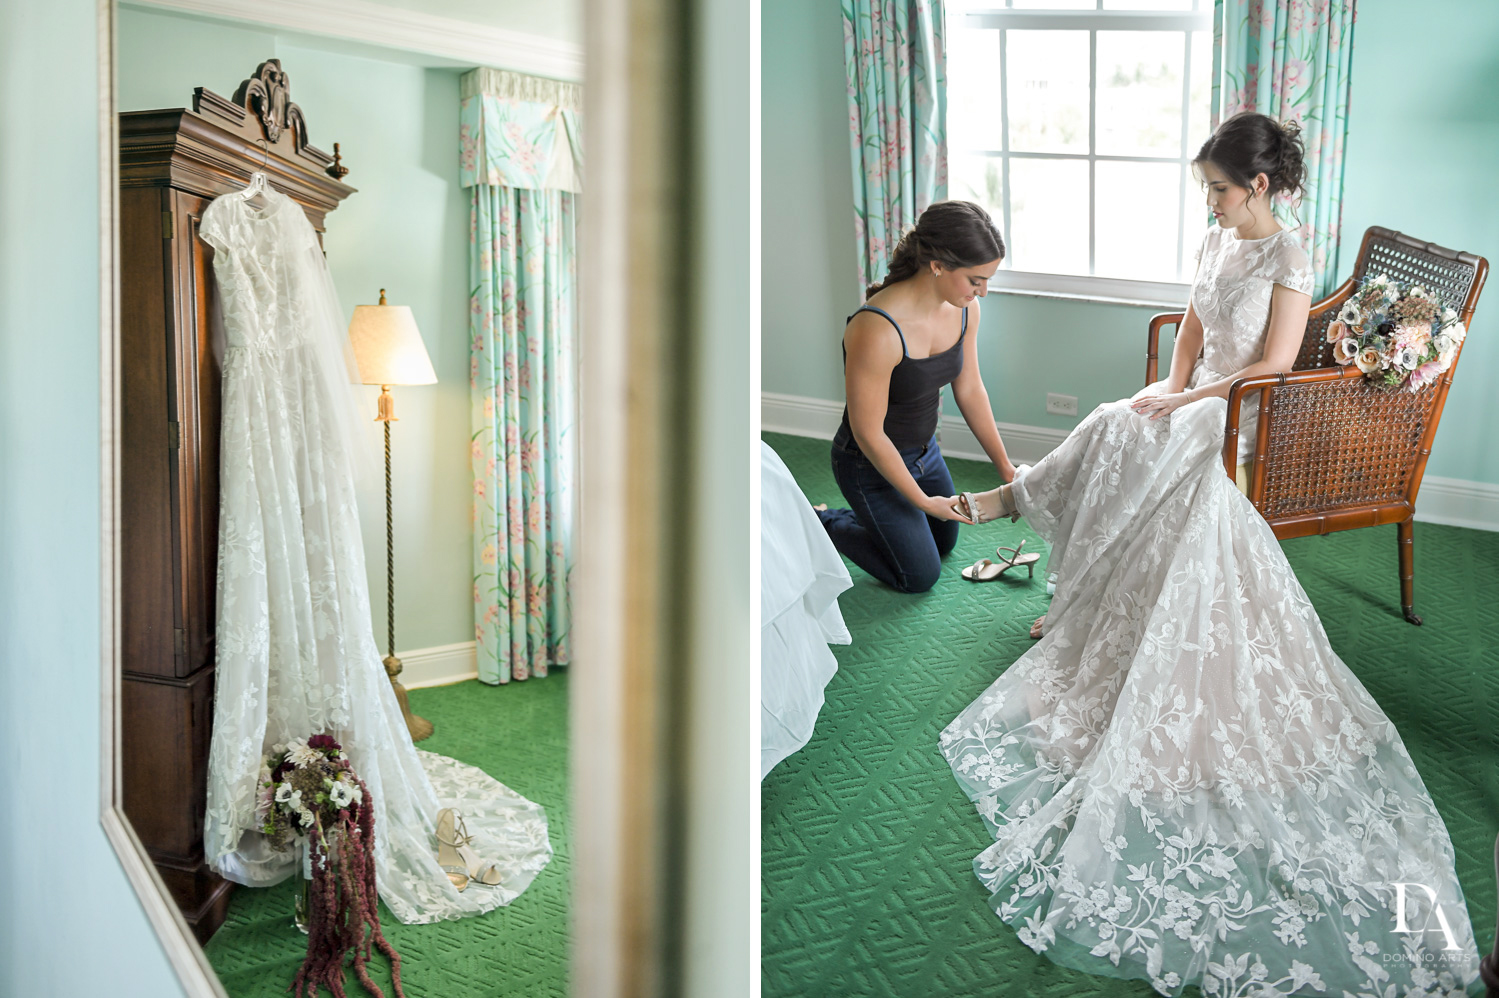 bridal dress at Luxury Summer Wedding at The Colony Hotel Palm Beach by Domino Arts Photography